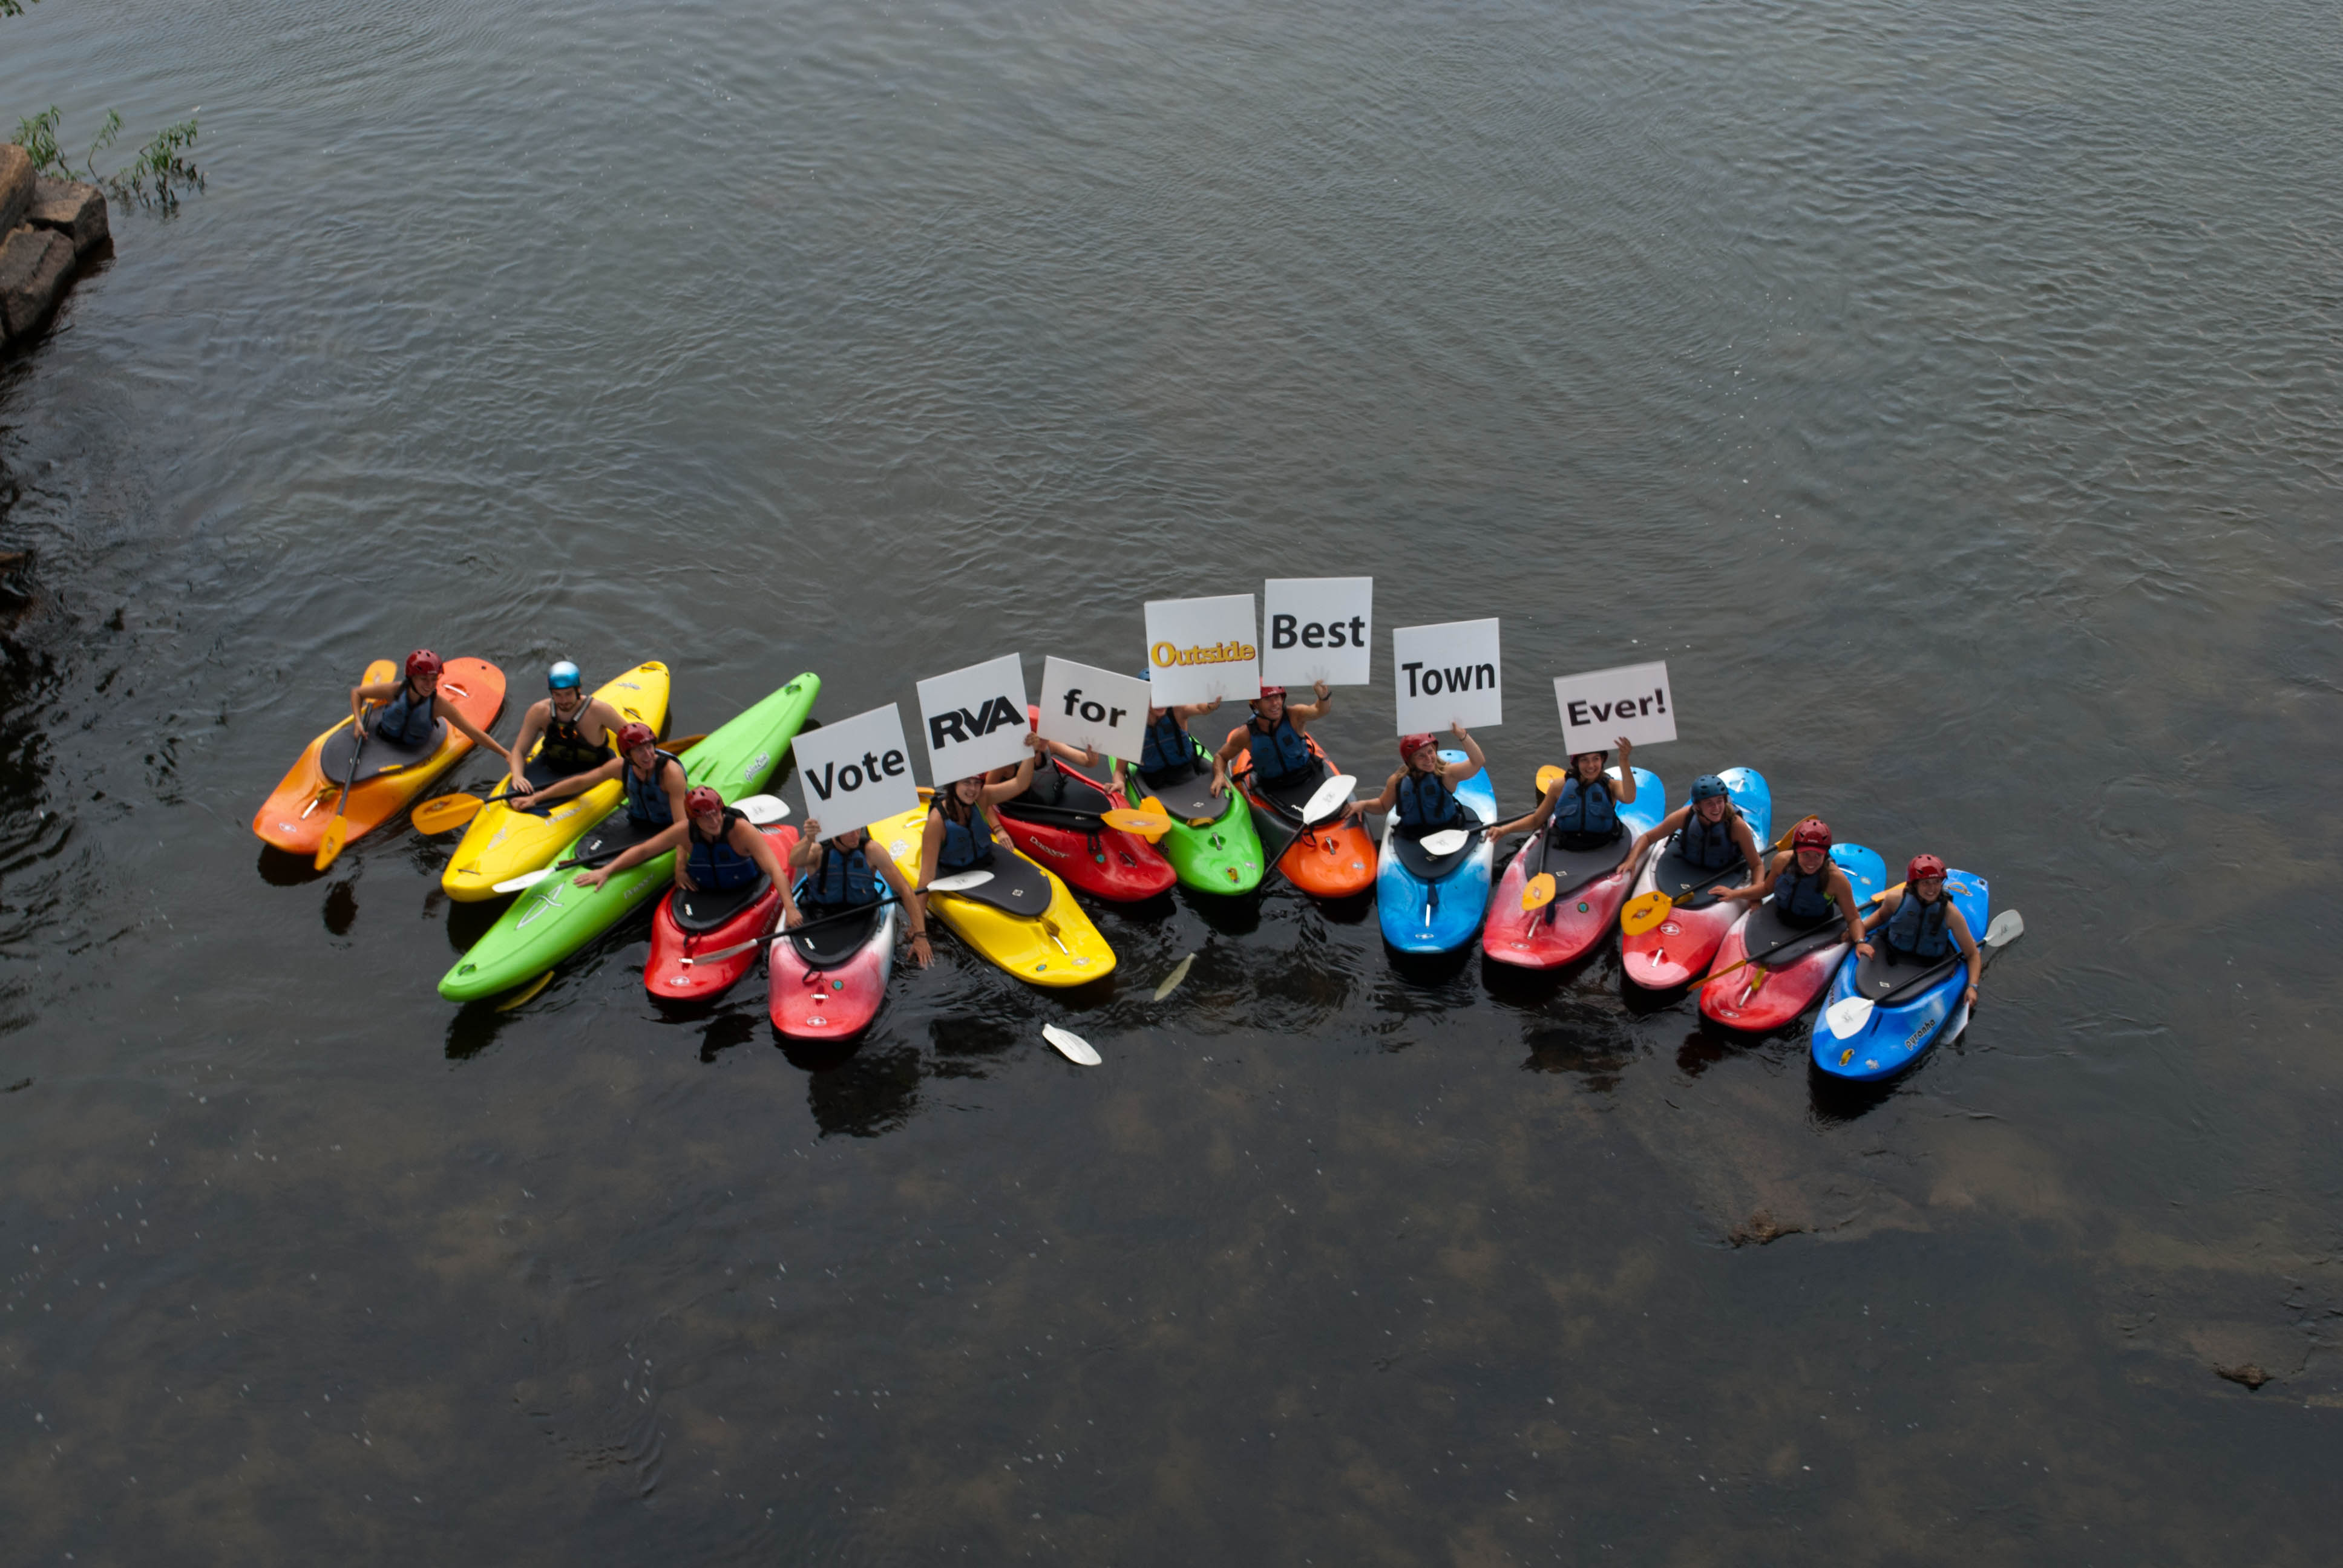 Kayakers support the Best Town Ever (13)